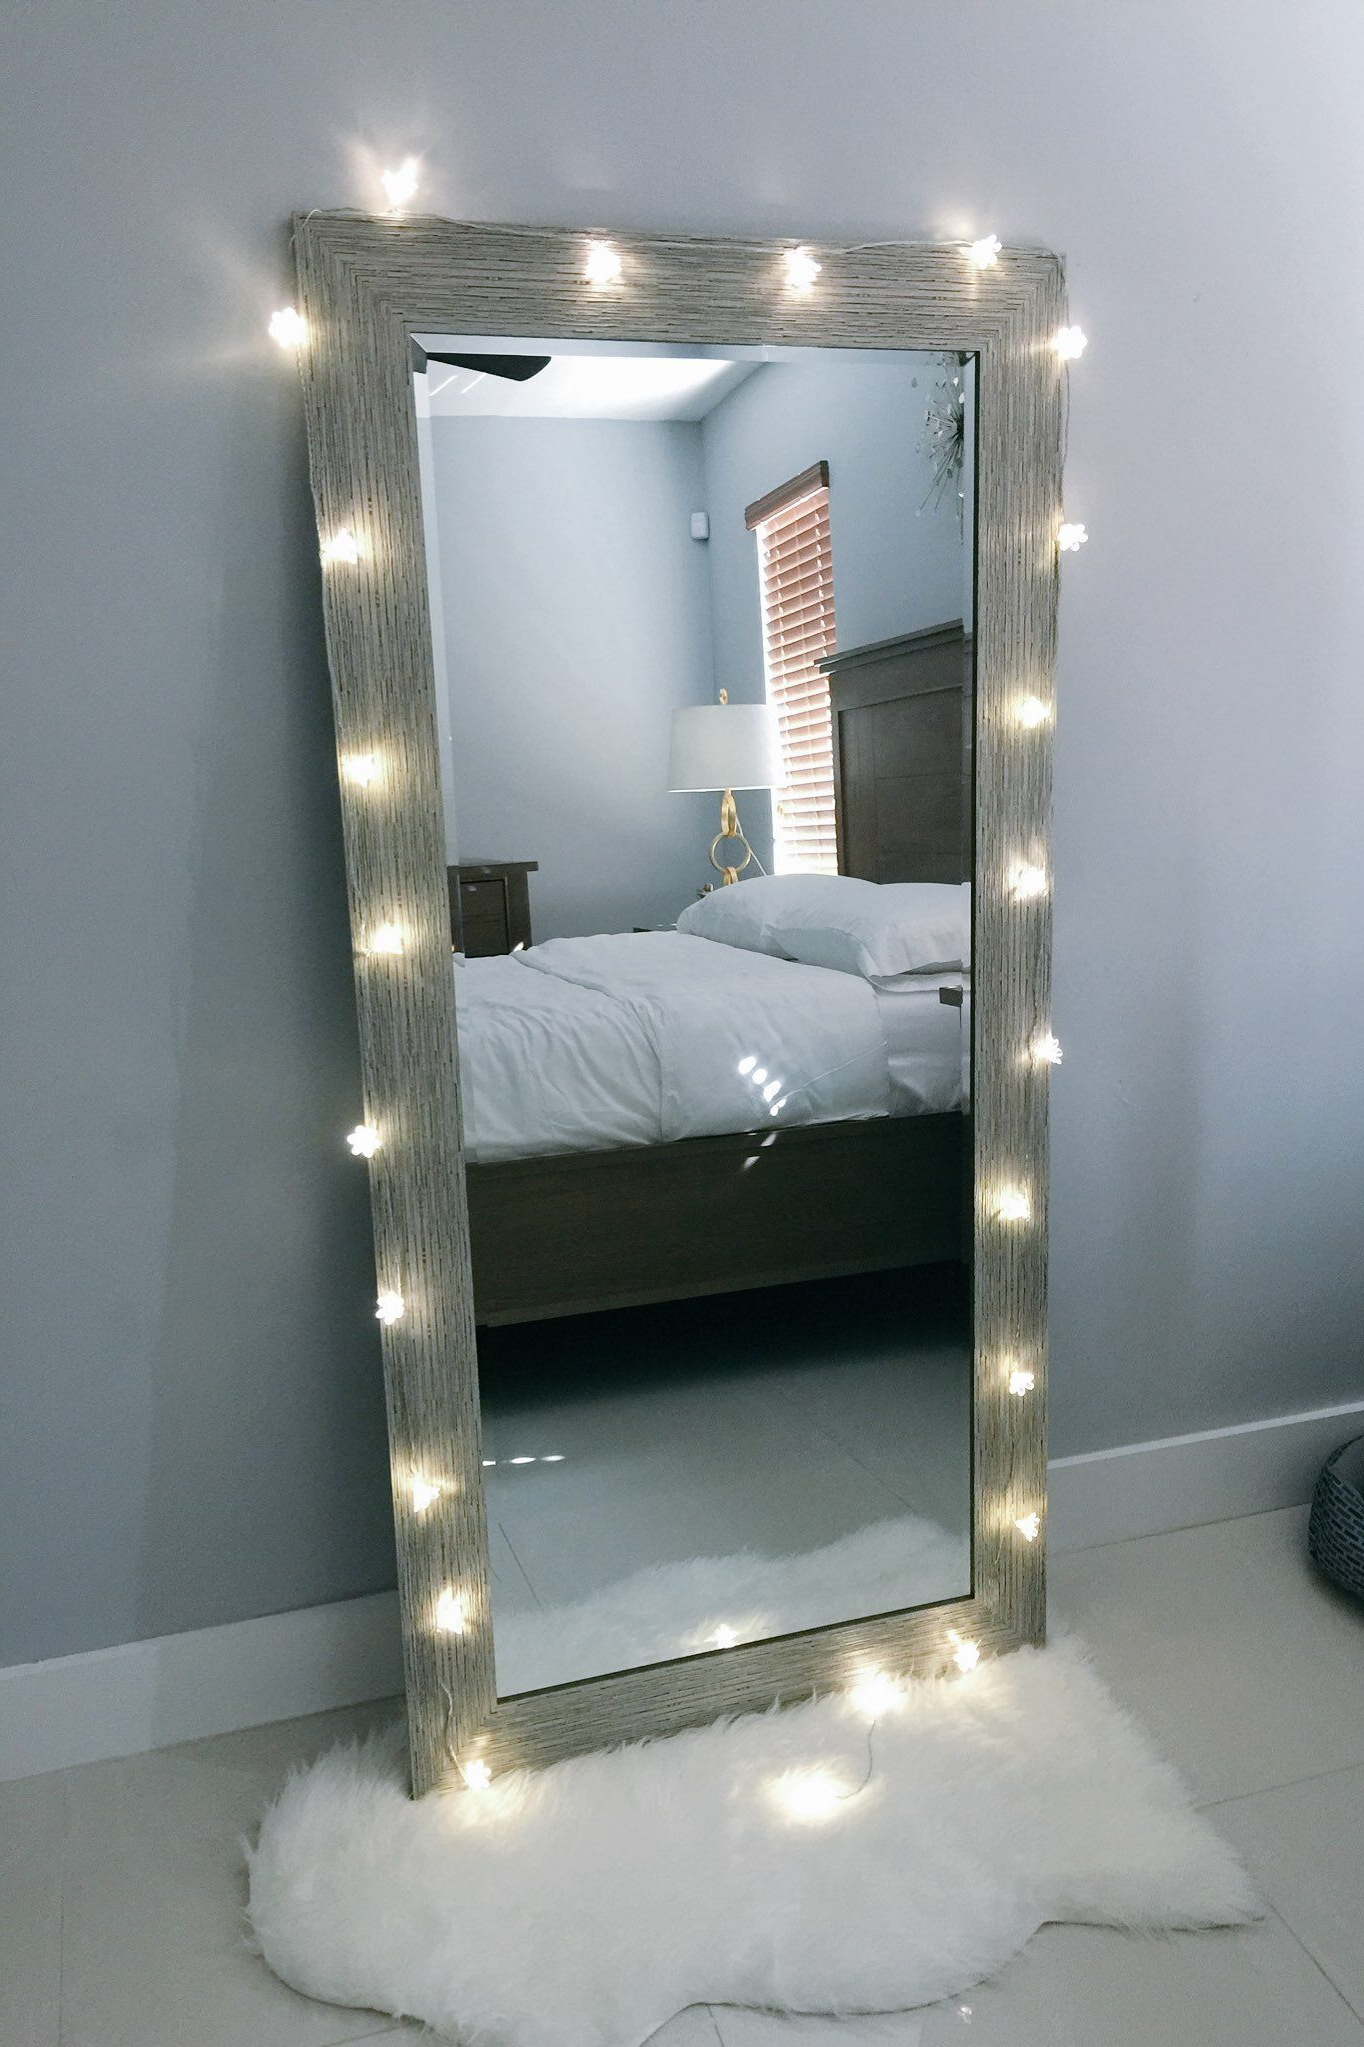 Create A Luxurious And Unique Decoration For The Kids' Room Using Regarding 2020 Childrens Full Length Wall Mirrors (View 8 of 20)